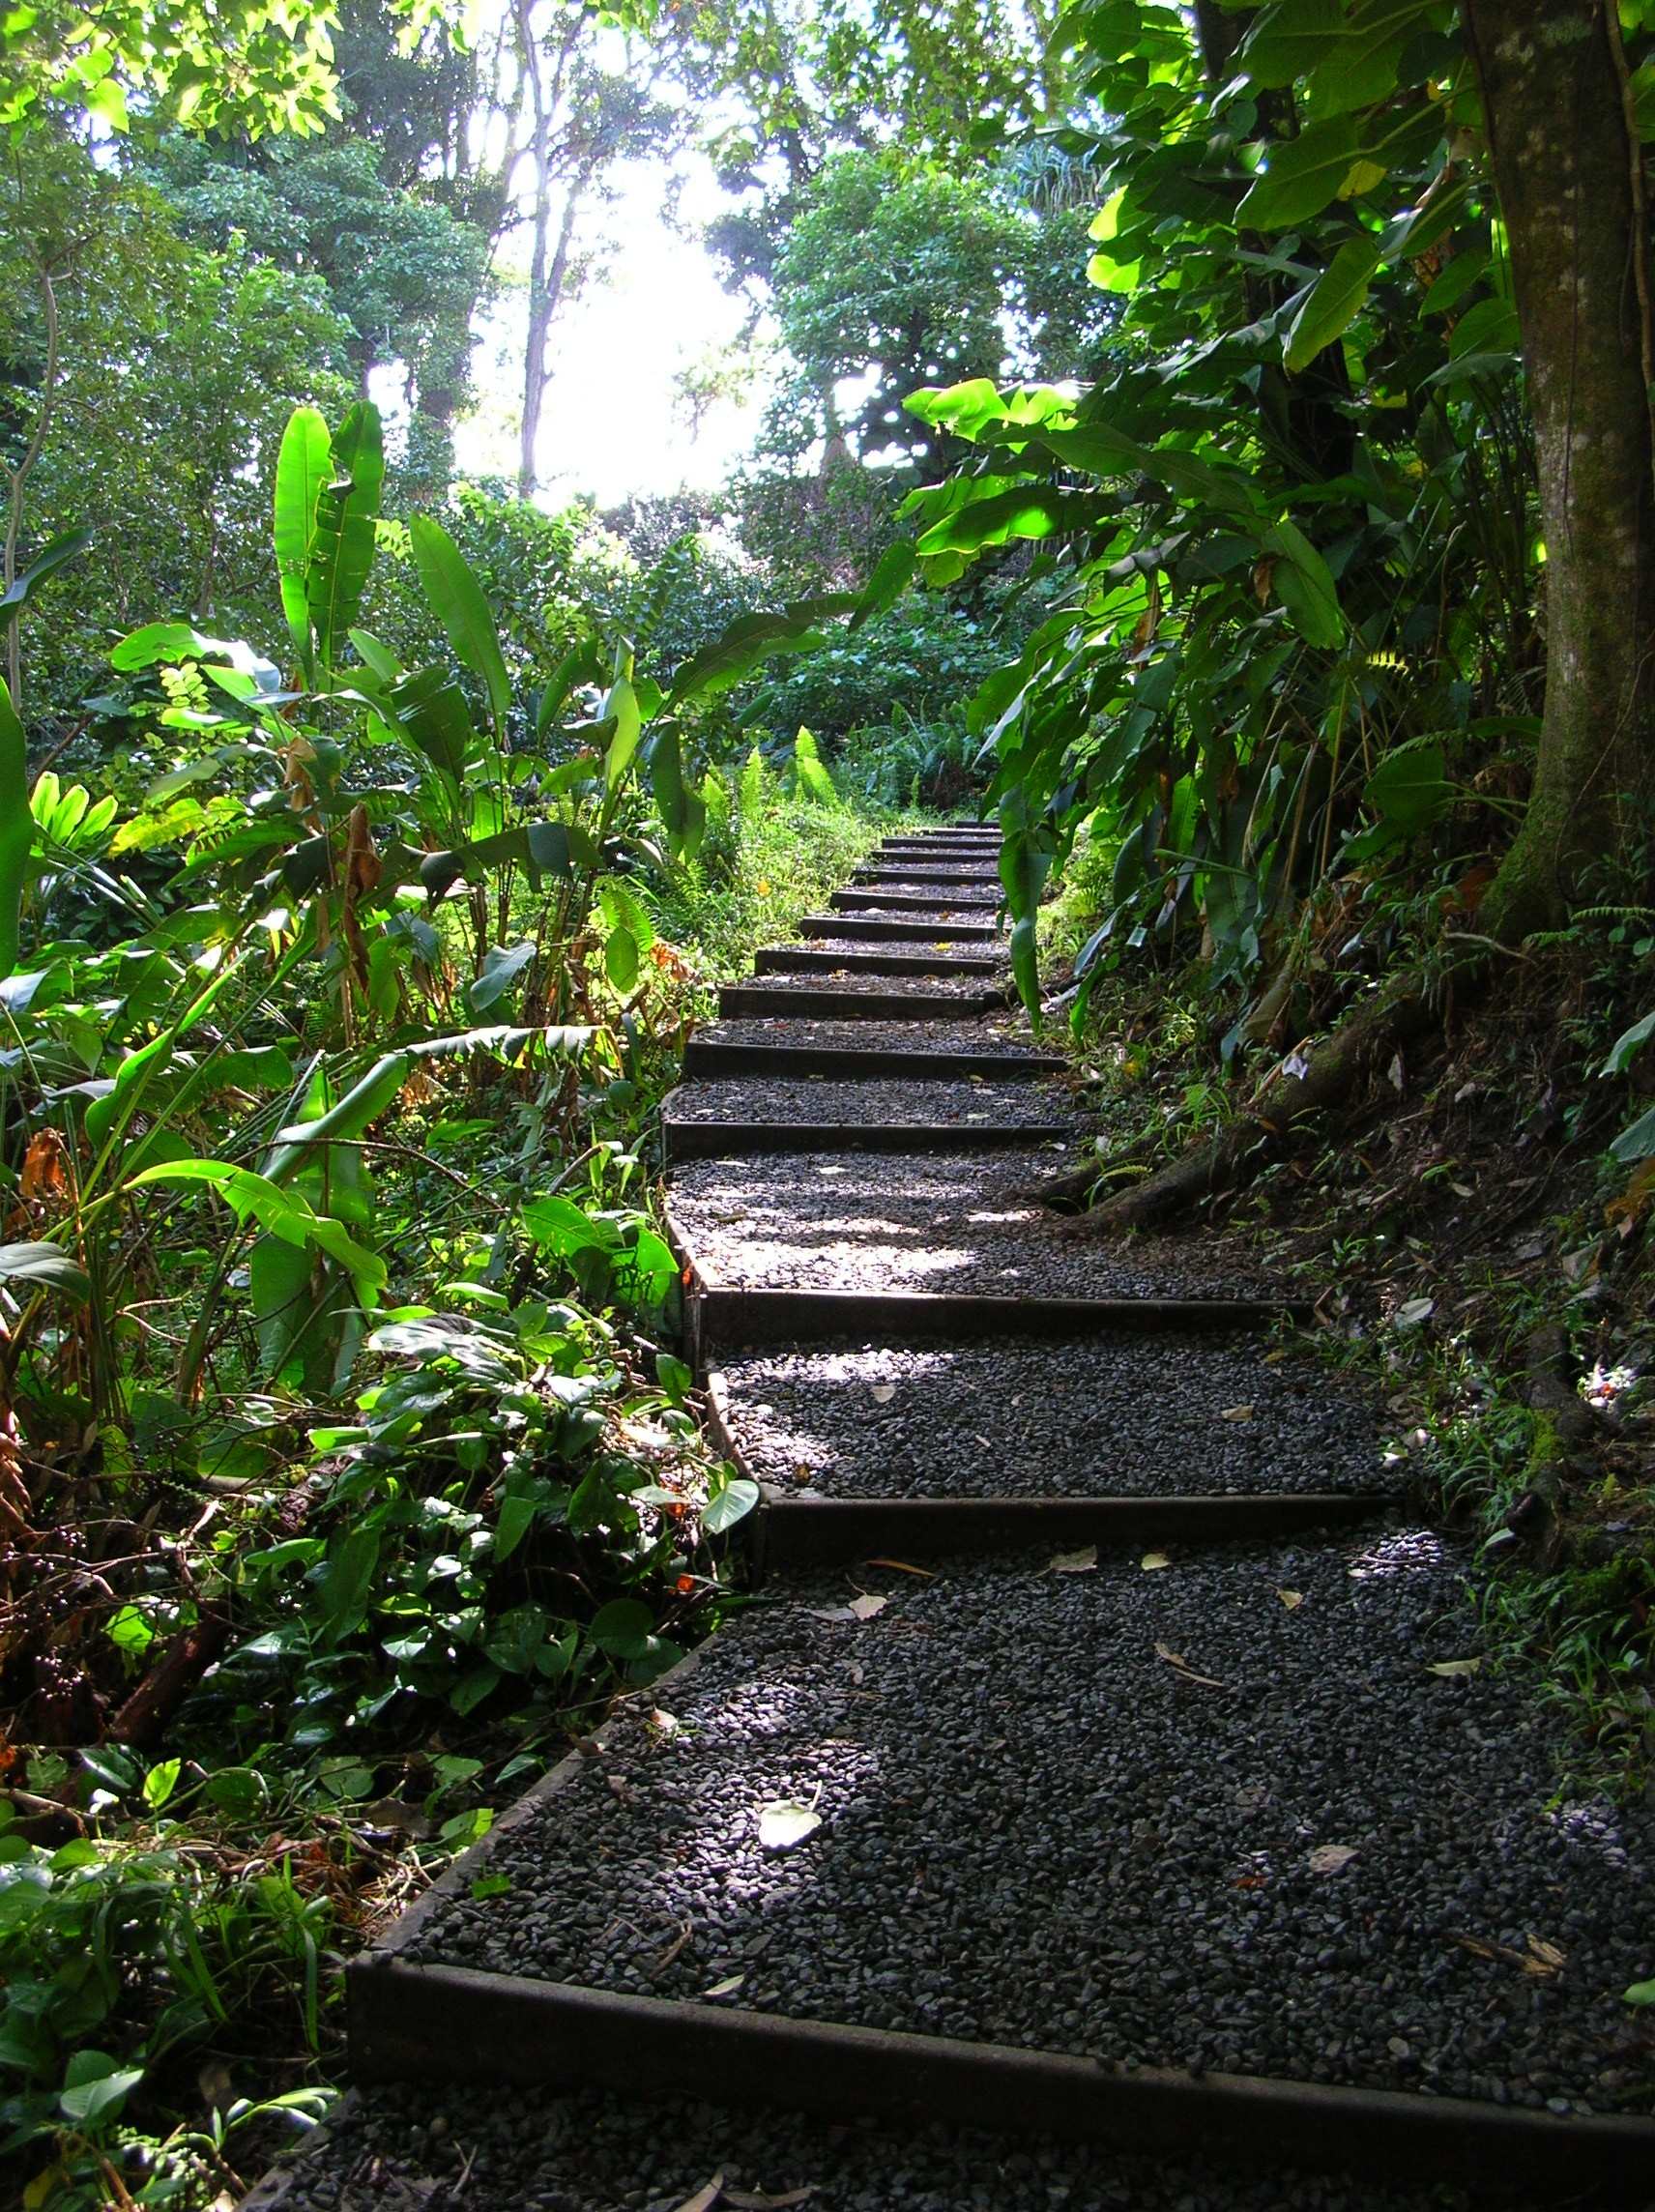 Hike the Cloud Forest of Waikamoi: Auction Package to Benefit Hawaiian Islands Land Trust